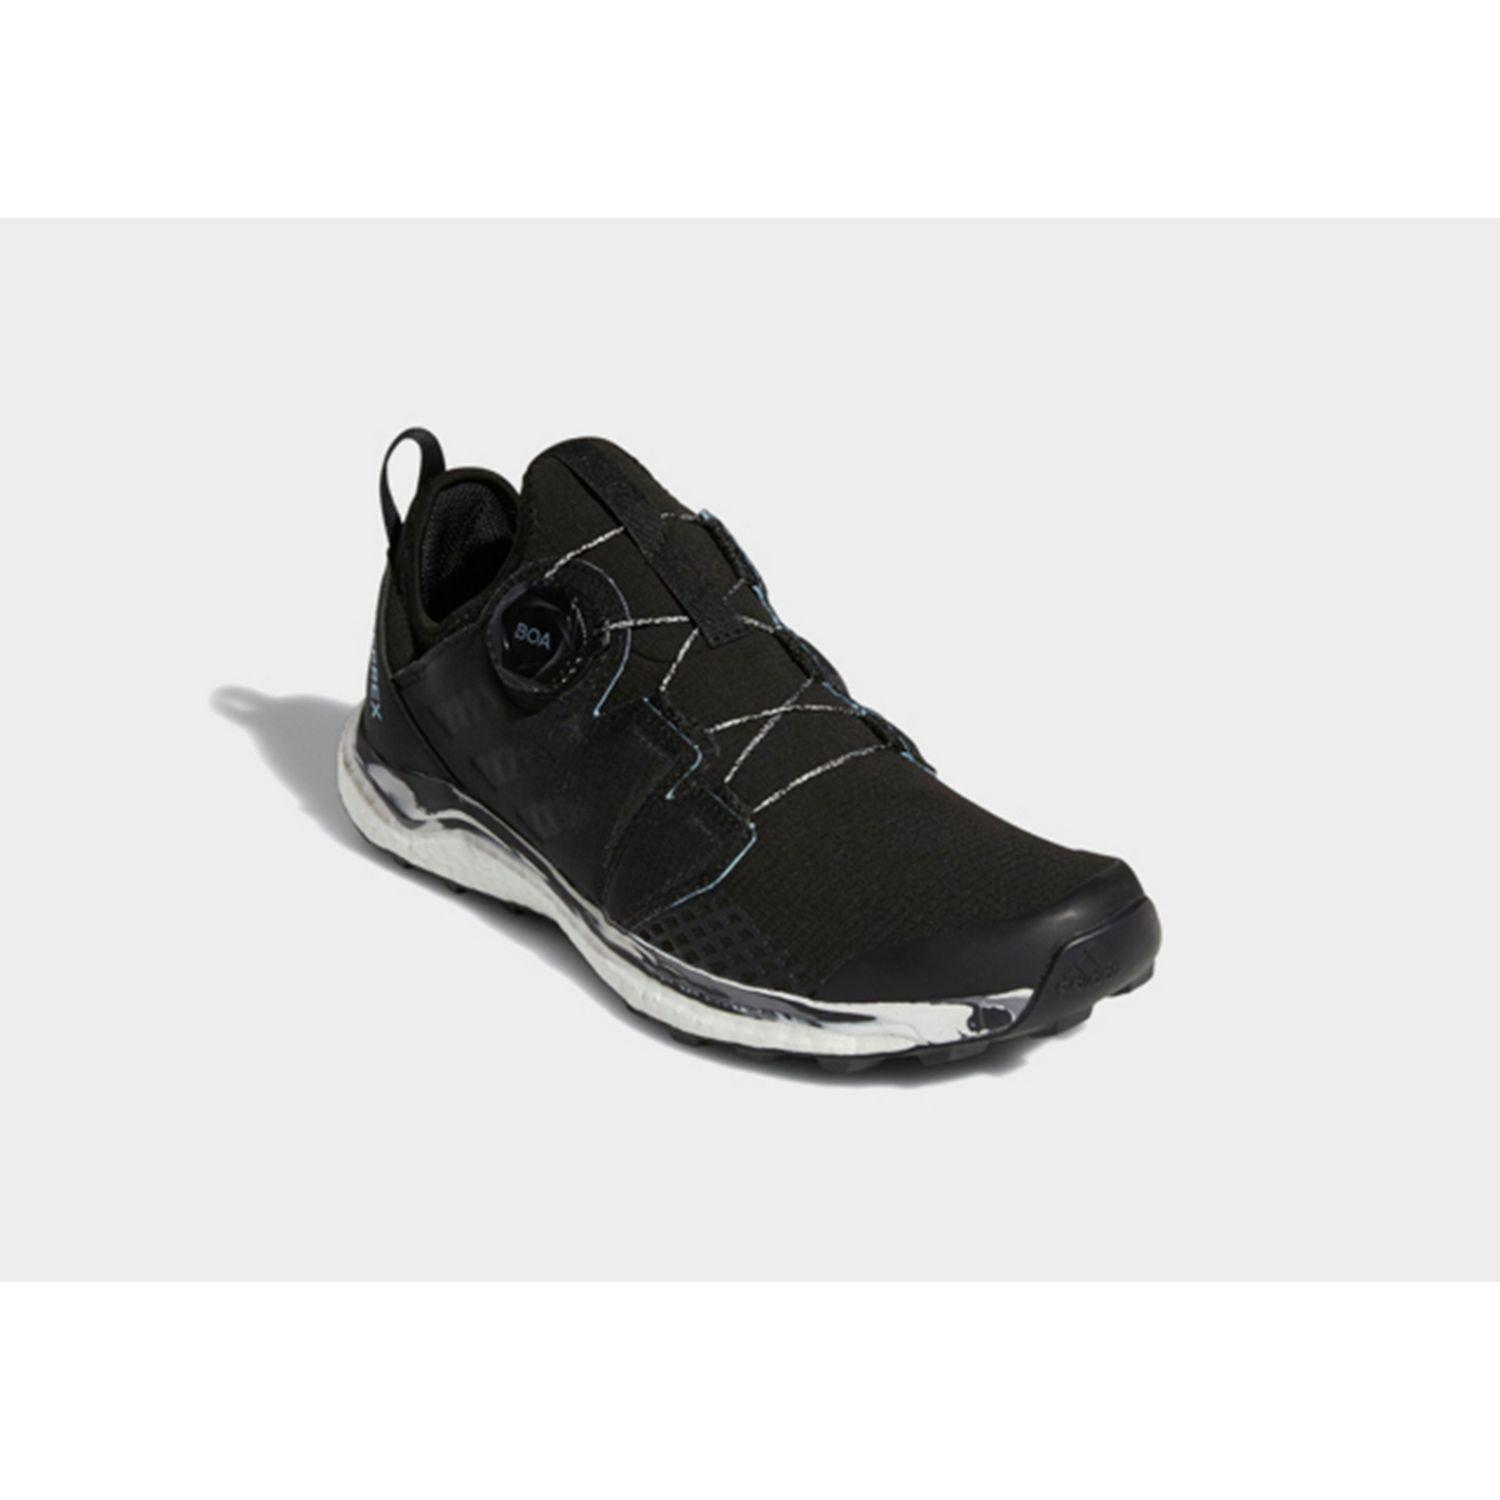 f0fcd780be27 adidas Terrex Agravic Boa Shoes in Black - Lyst